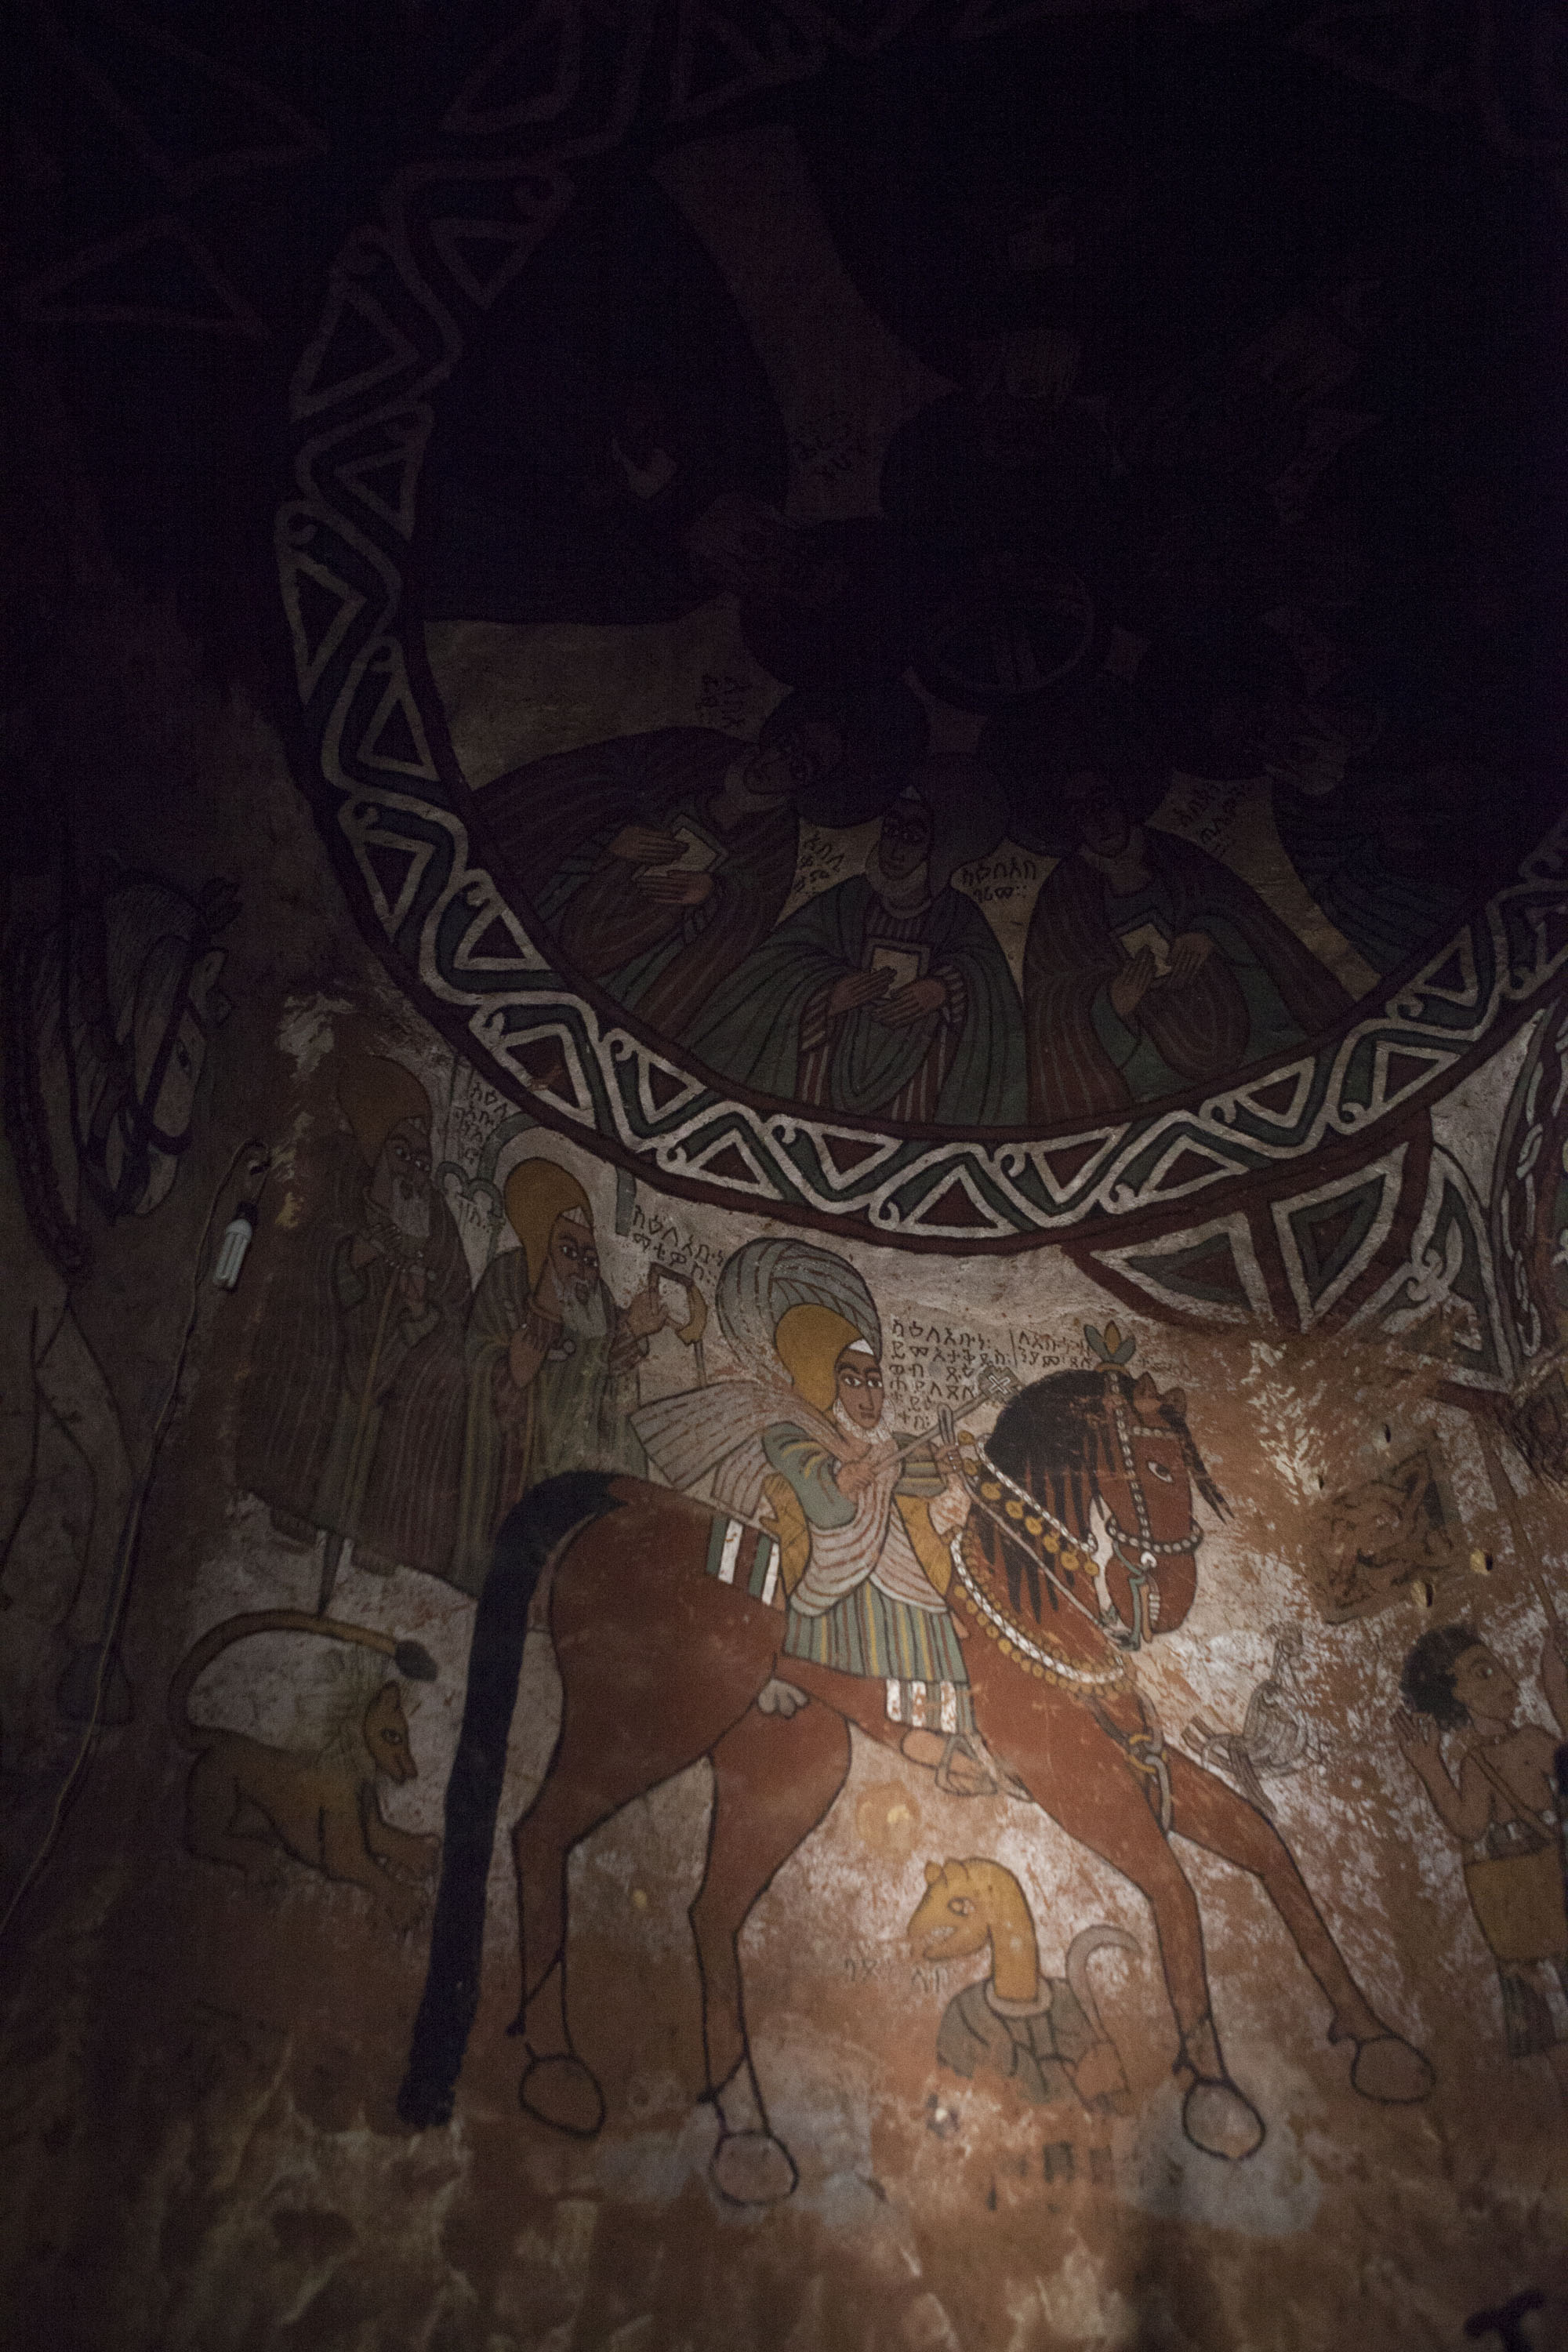 A wall painting inside of Abuna Yemata Church, which is said to have been built by a Syrian priestin the 5th century. It is said to be the most inaccessible church in the world.